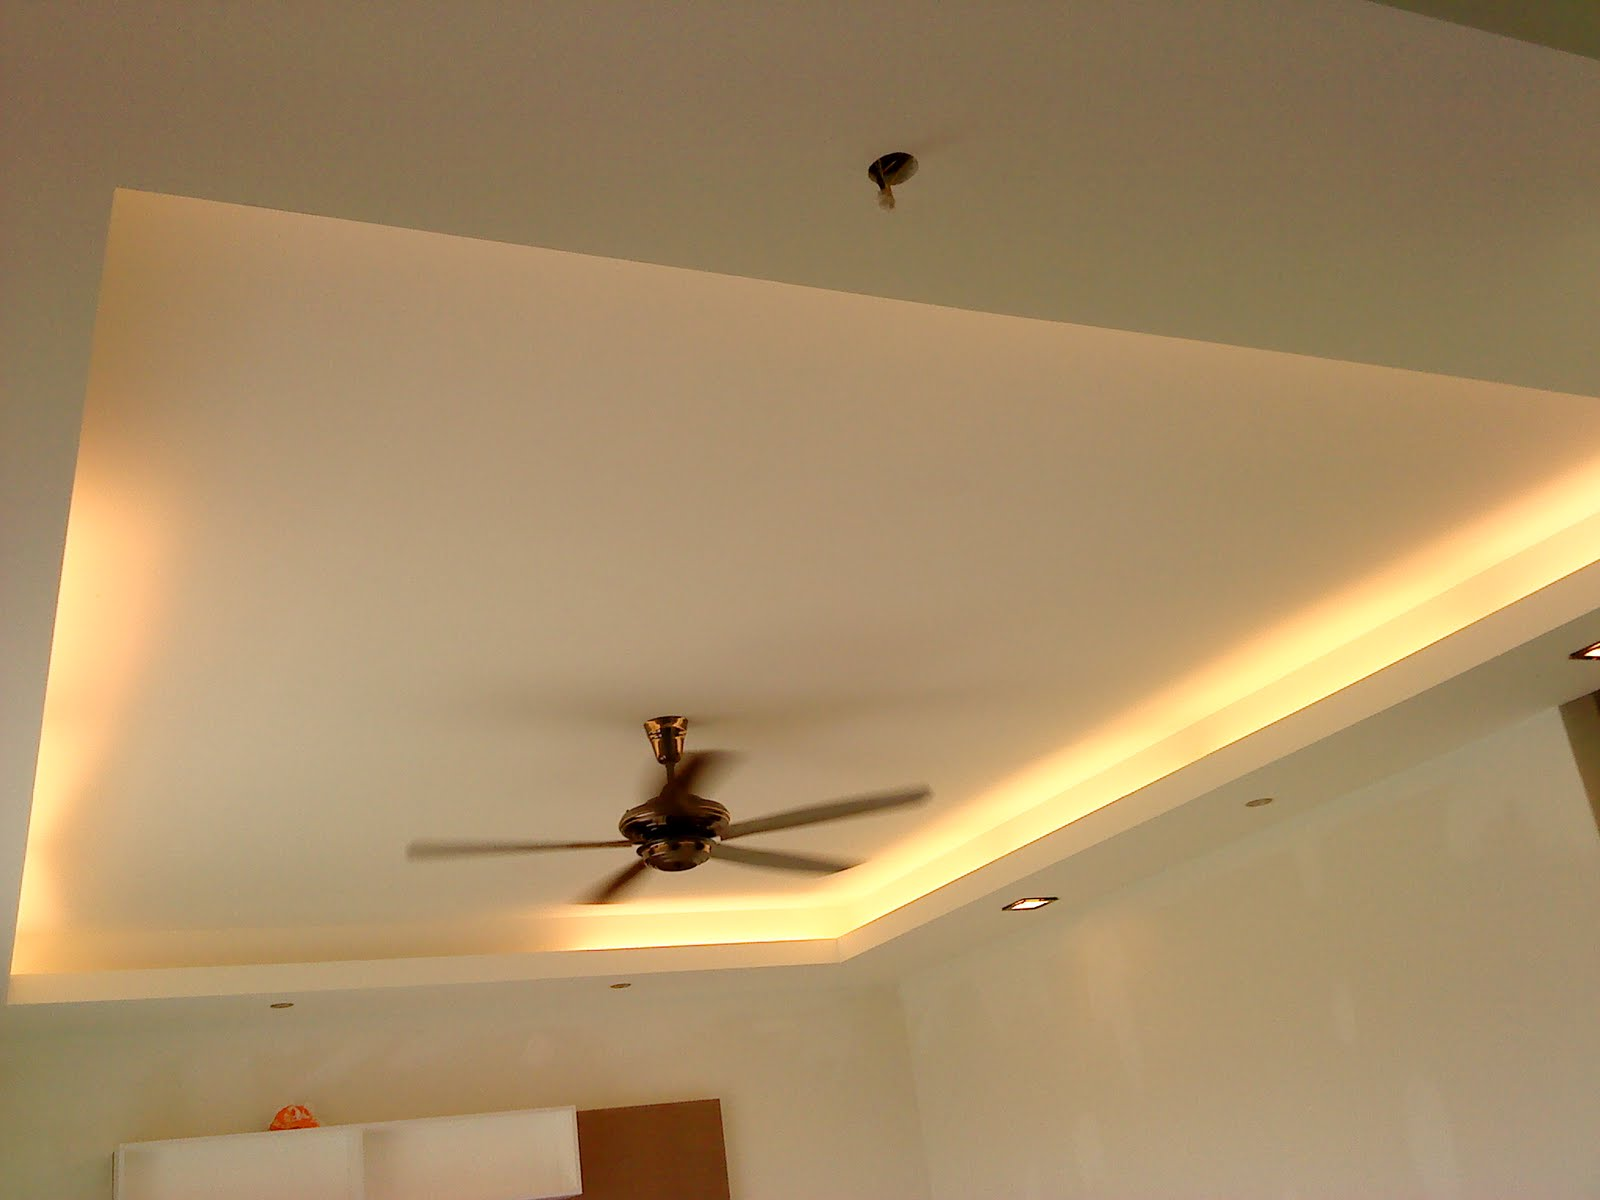 Plaster Ceiling Lights Design : My love affair with plaster ceiling contractor